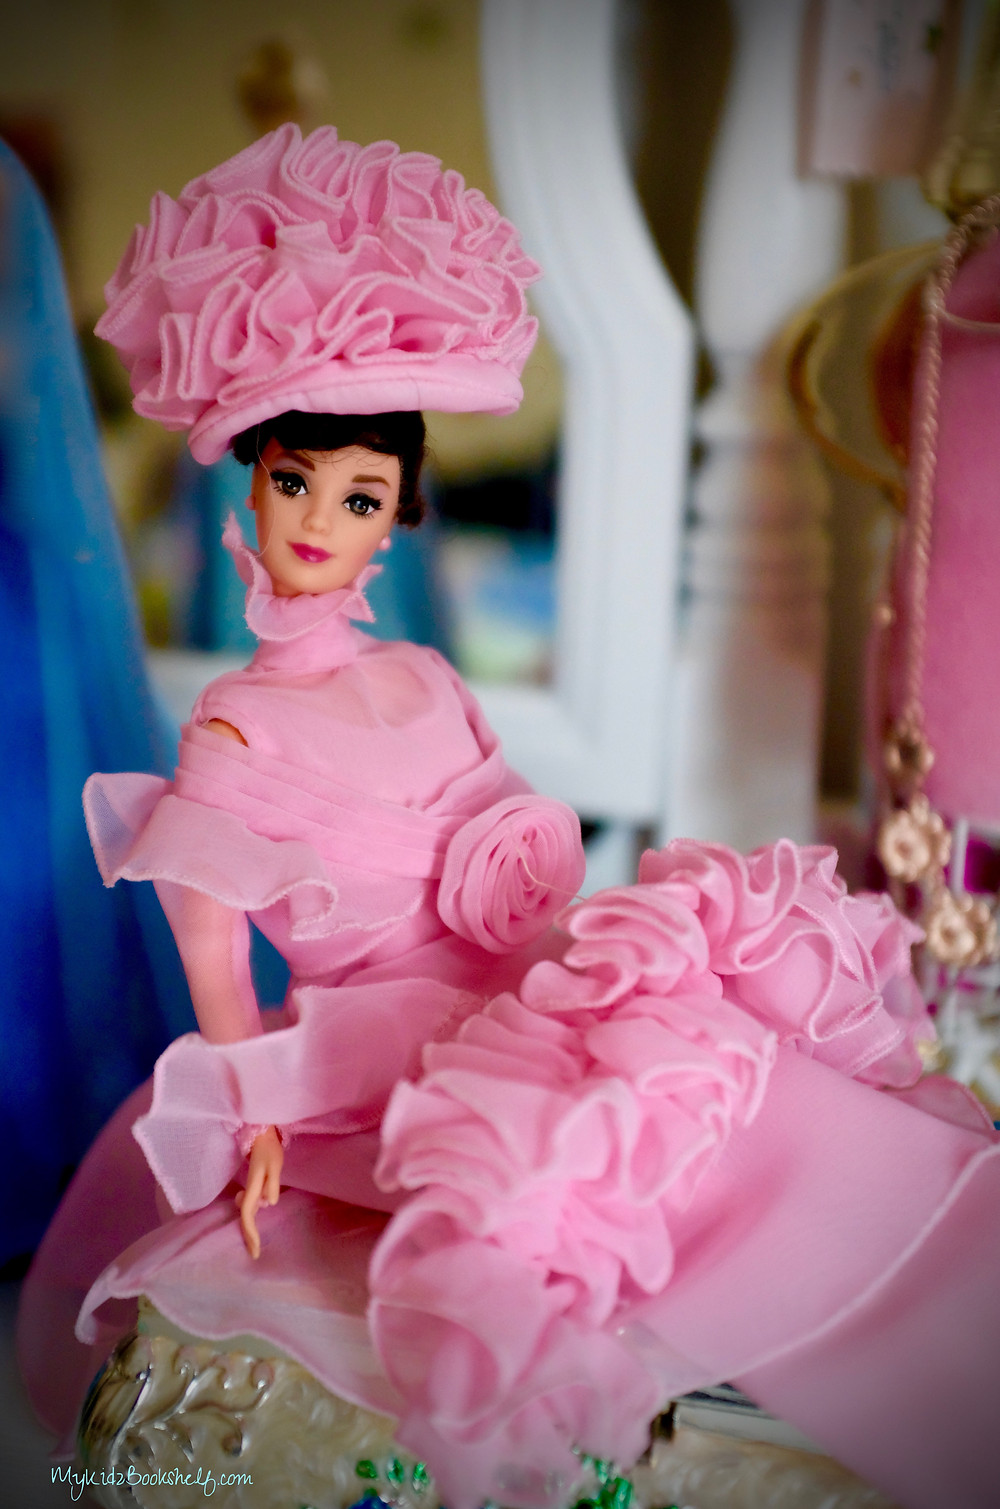 Barbie Doll limited edition of Audrey Hepburn dressed up as Eliza Doolittle from the movie, My Fair Lady. She is wearing all pink outfit and hat from one of the scenes in the movie.